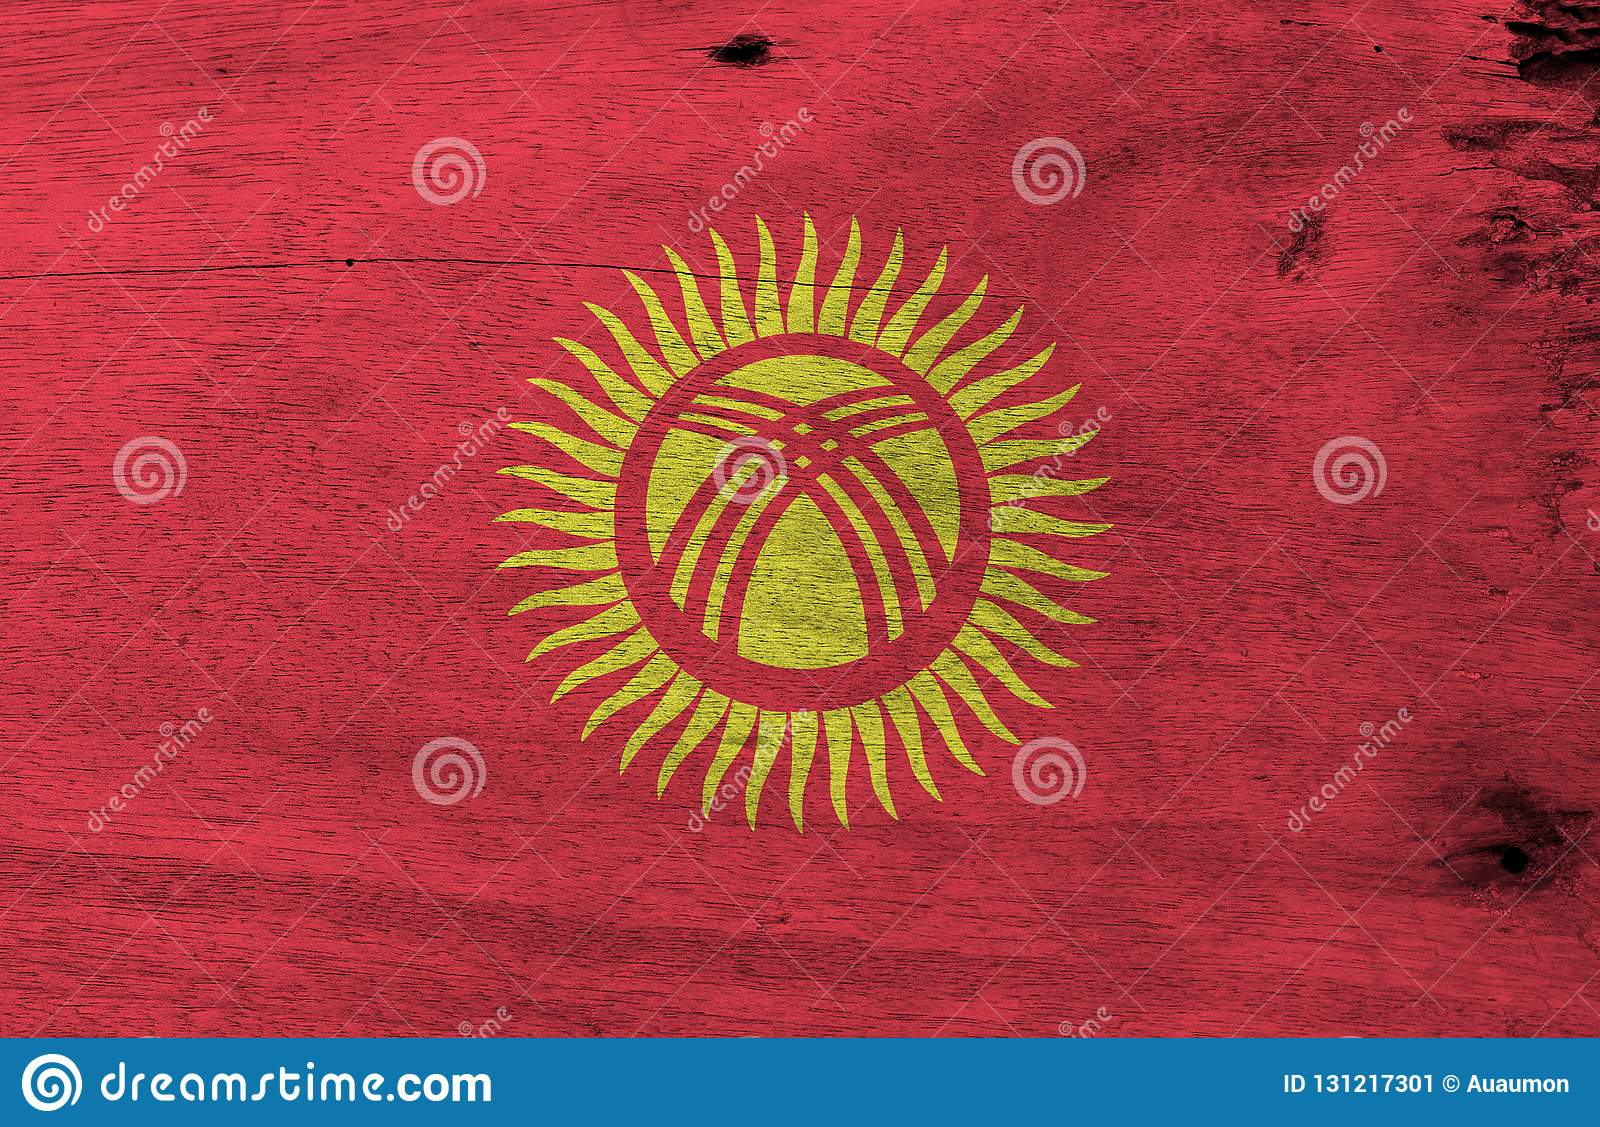 Grunge Kyrgyz flag texture, red field with a yellow sun with forty uniformly spaced rays.